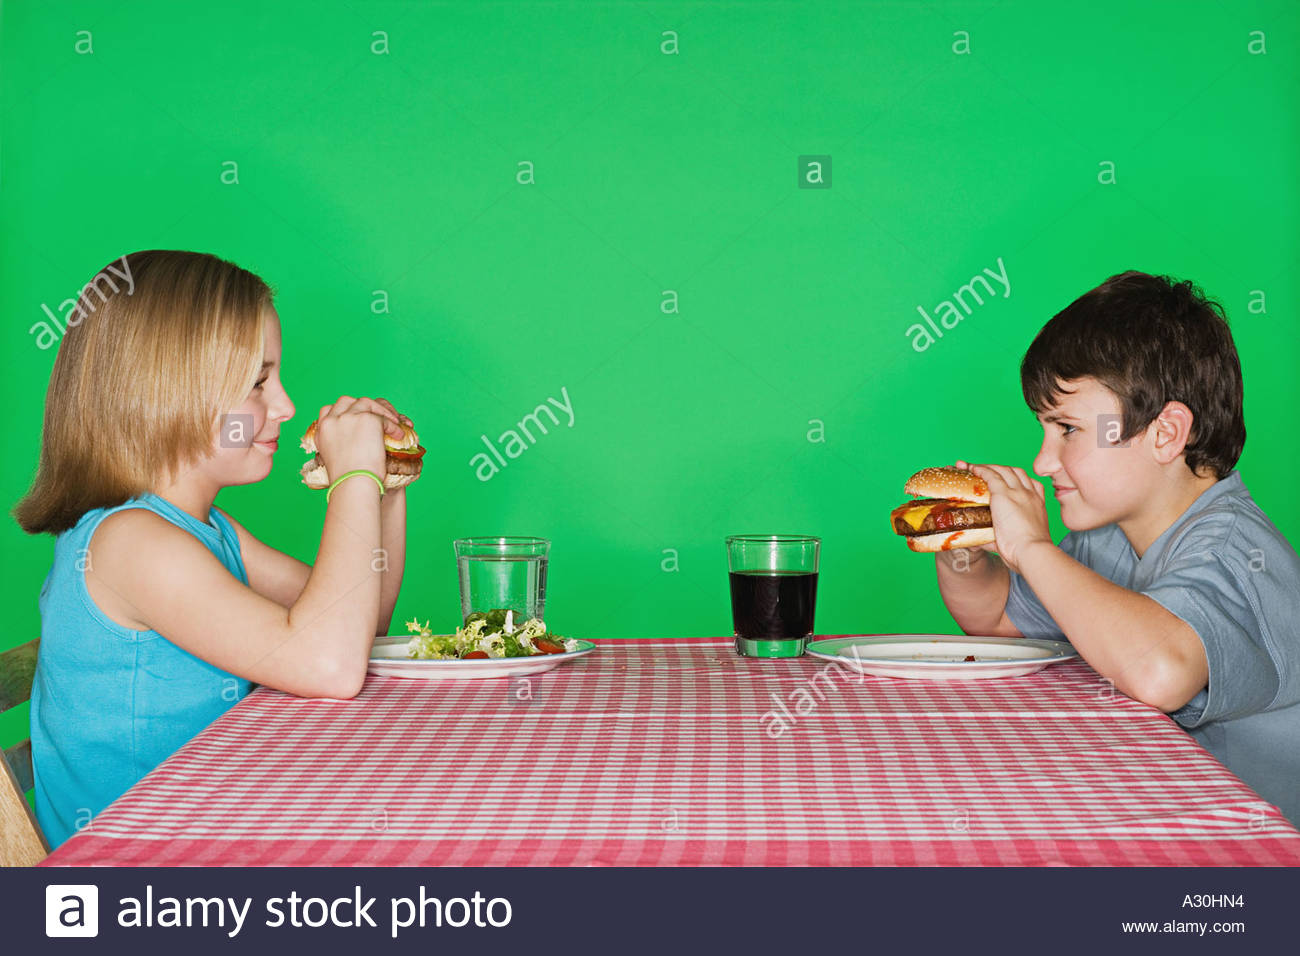 Girl and boy eating burgers - Stock Image